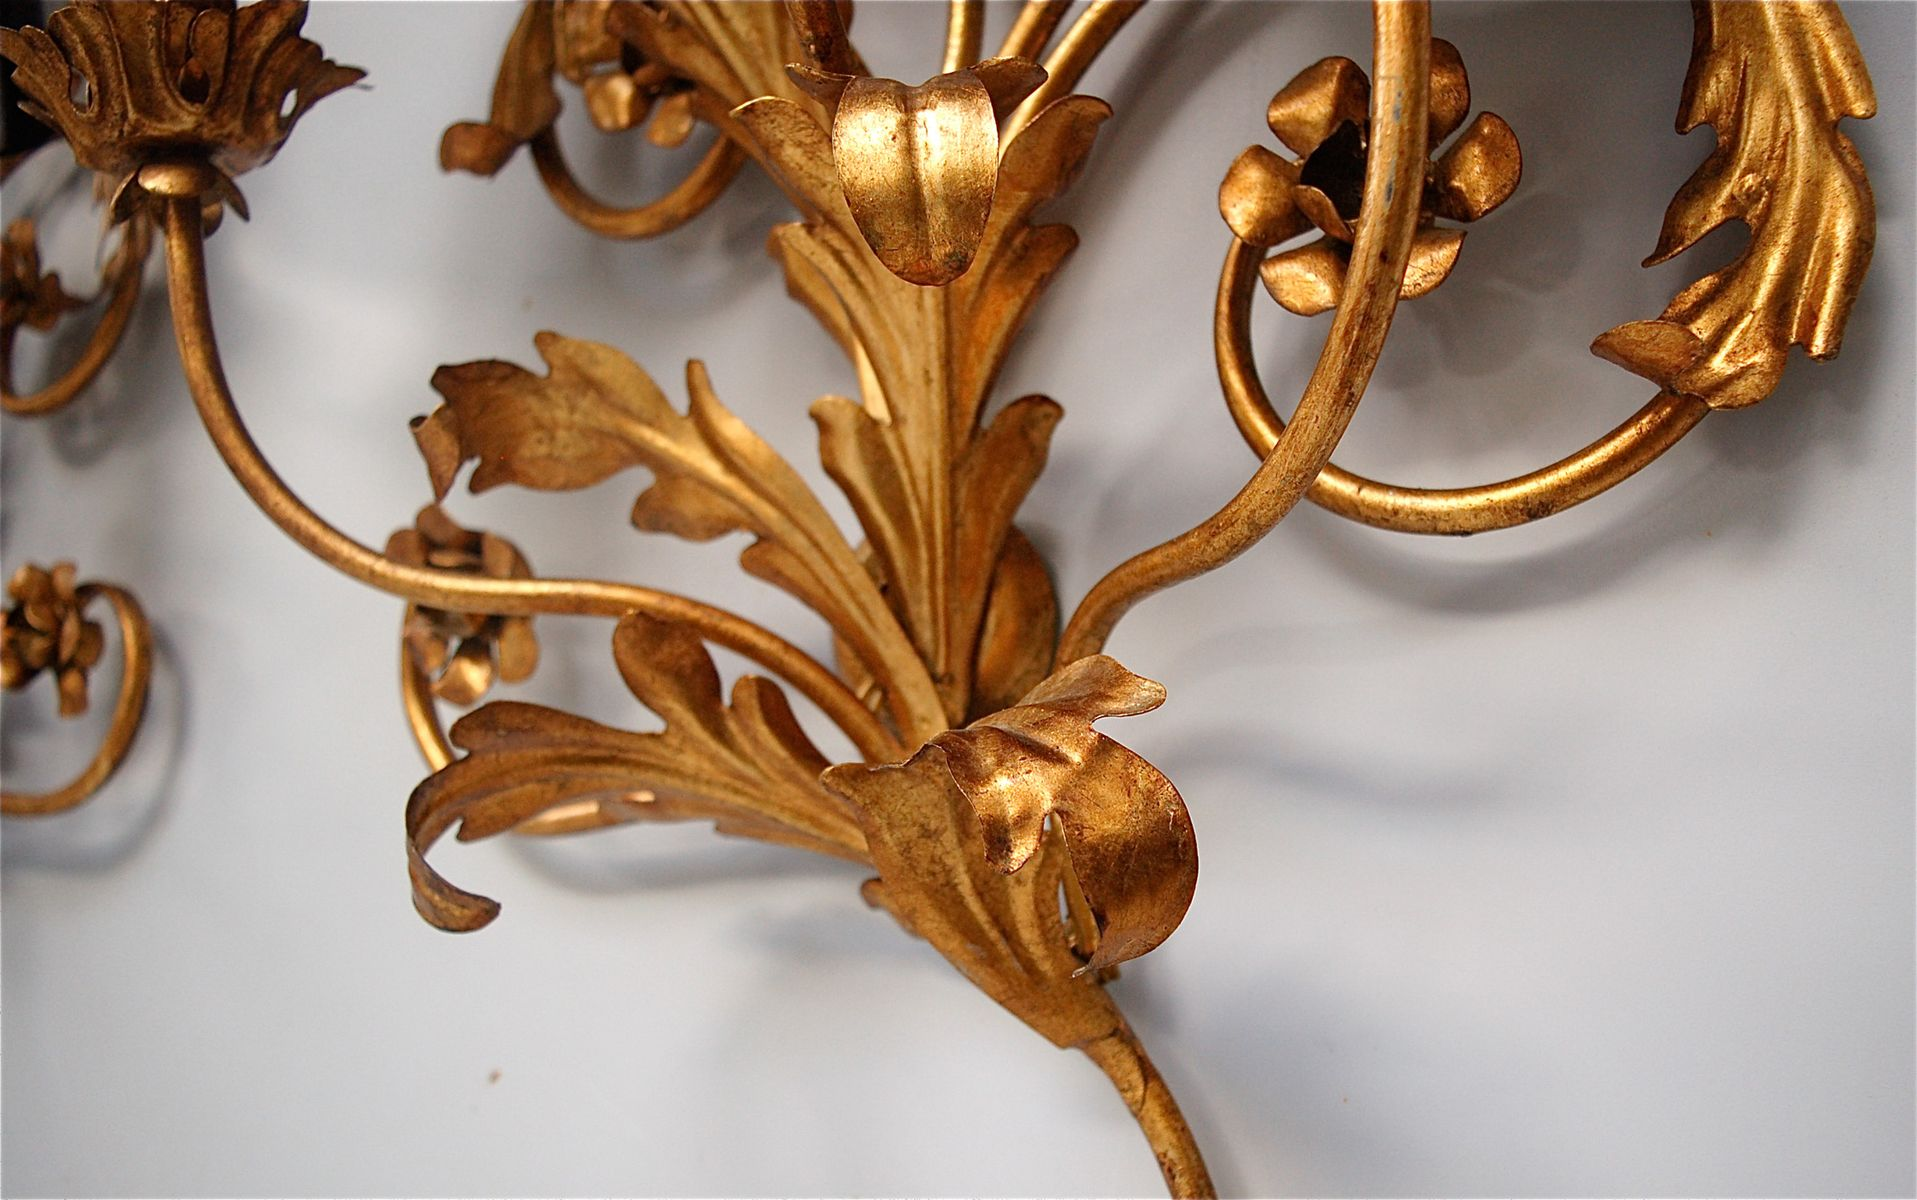 Large Italian Faux Candle Wall Sconces with Floral Details, Set of 2 for sale at Pamono